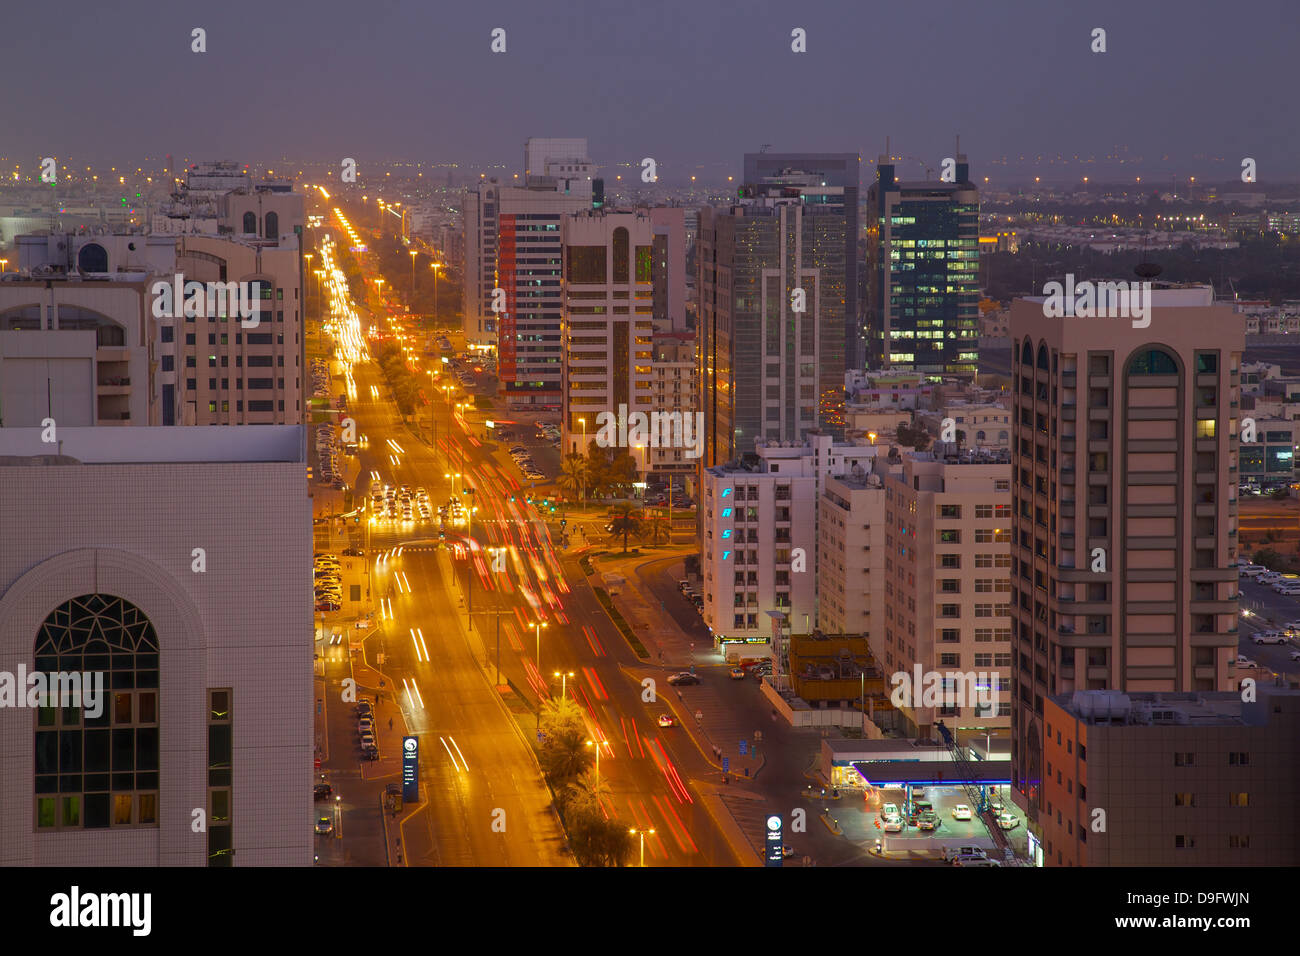 City skyline and Rashid Bin Saeed Al Maktoum Street at dusk, Abu Dhabi, United Arab Emirates, Middle East - Stock Image